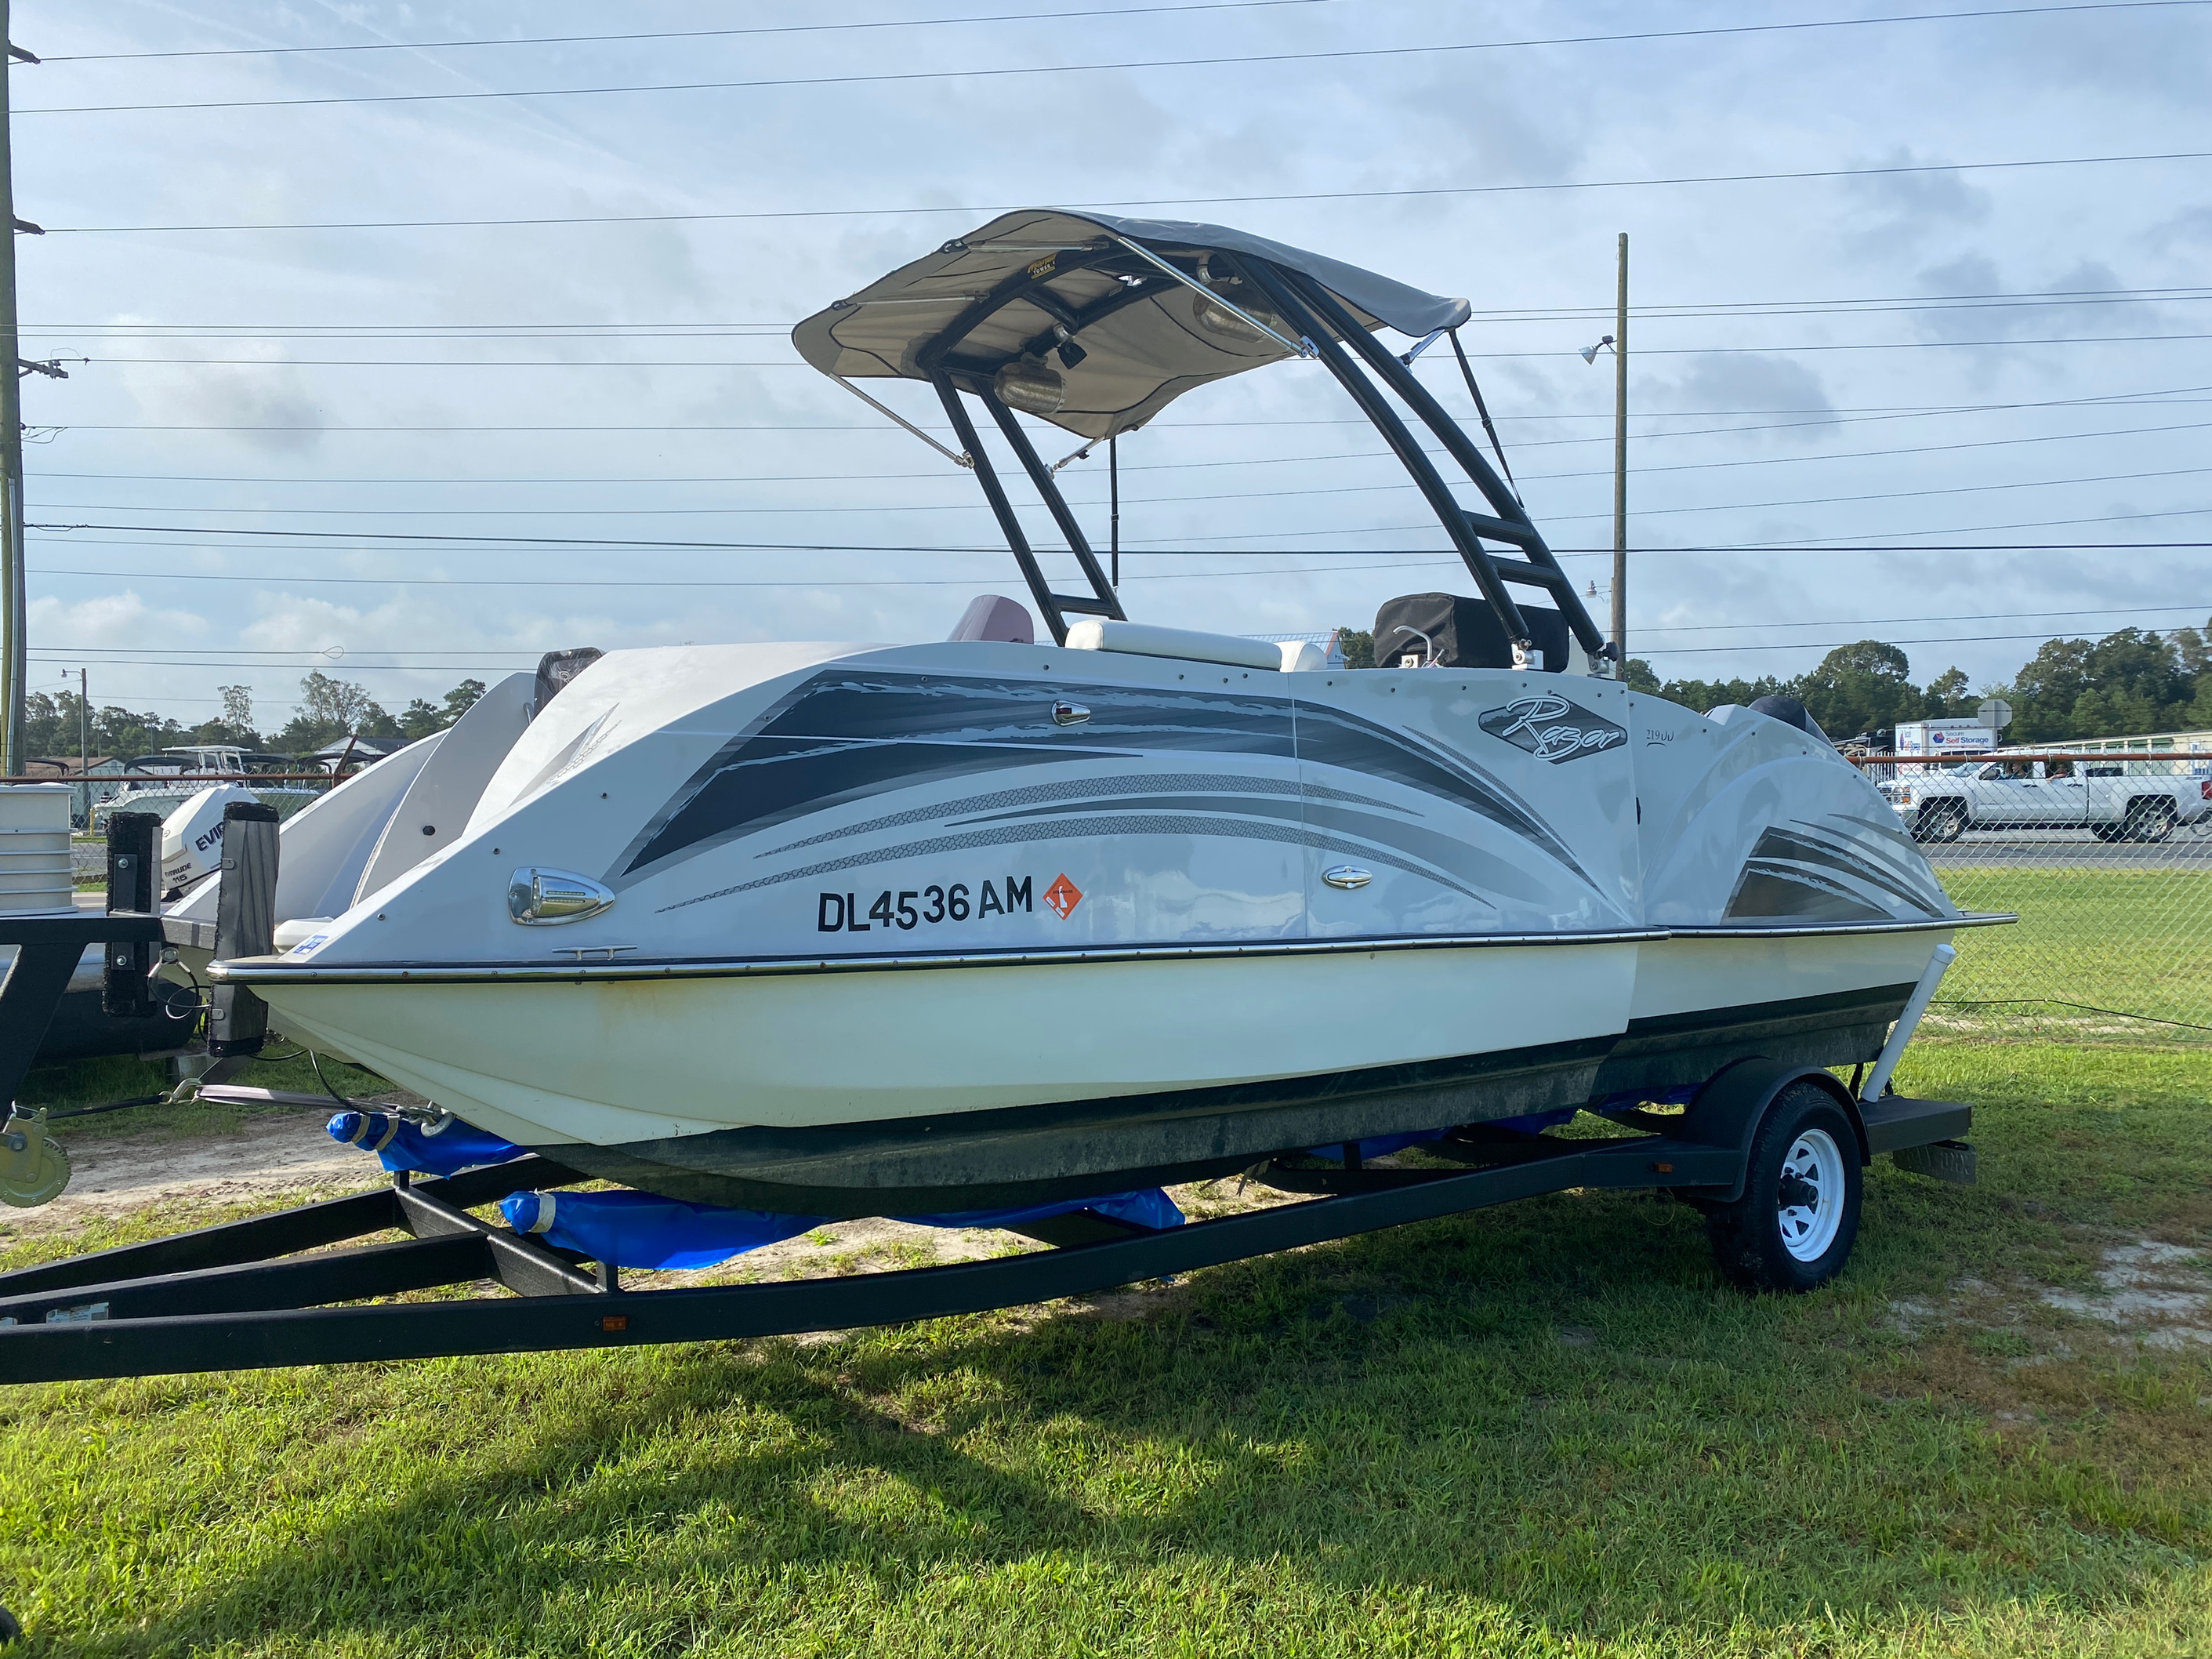 2019 Caravelle boat for sale, model of the boat is 219DD Deck Boat & Image # 1 of 14